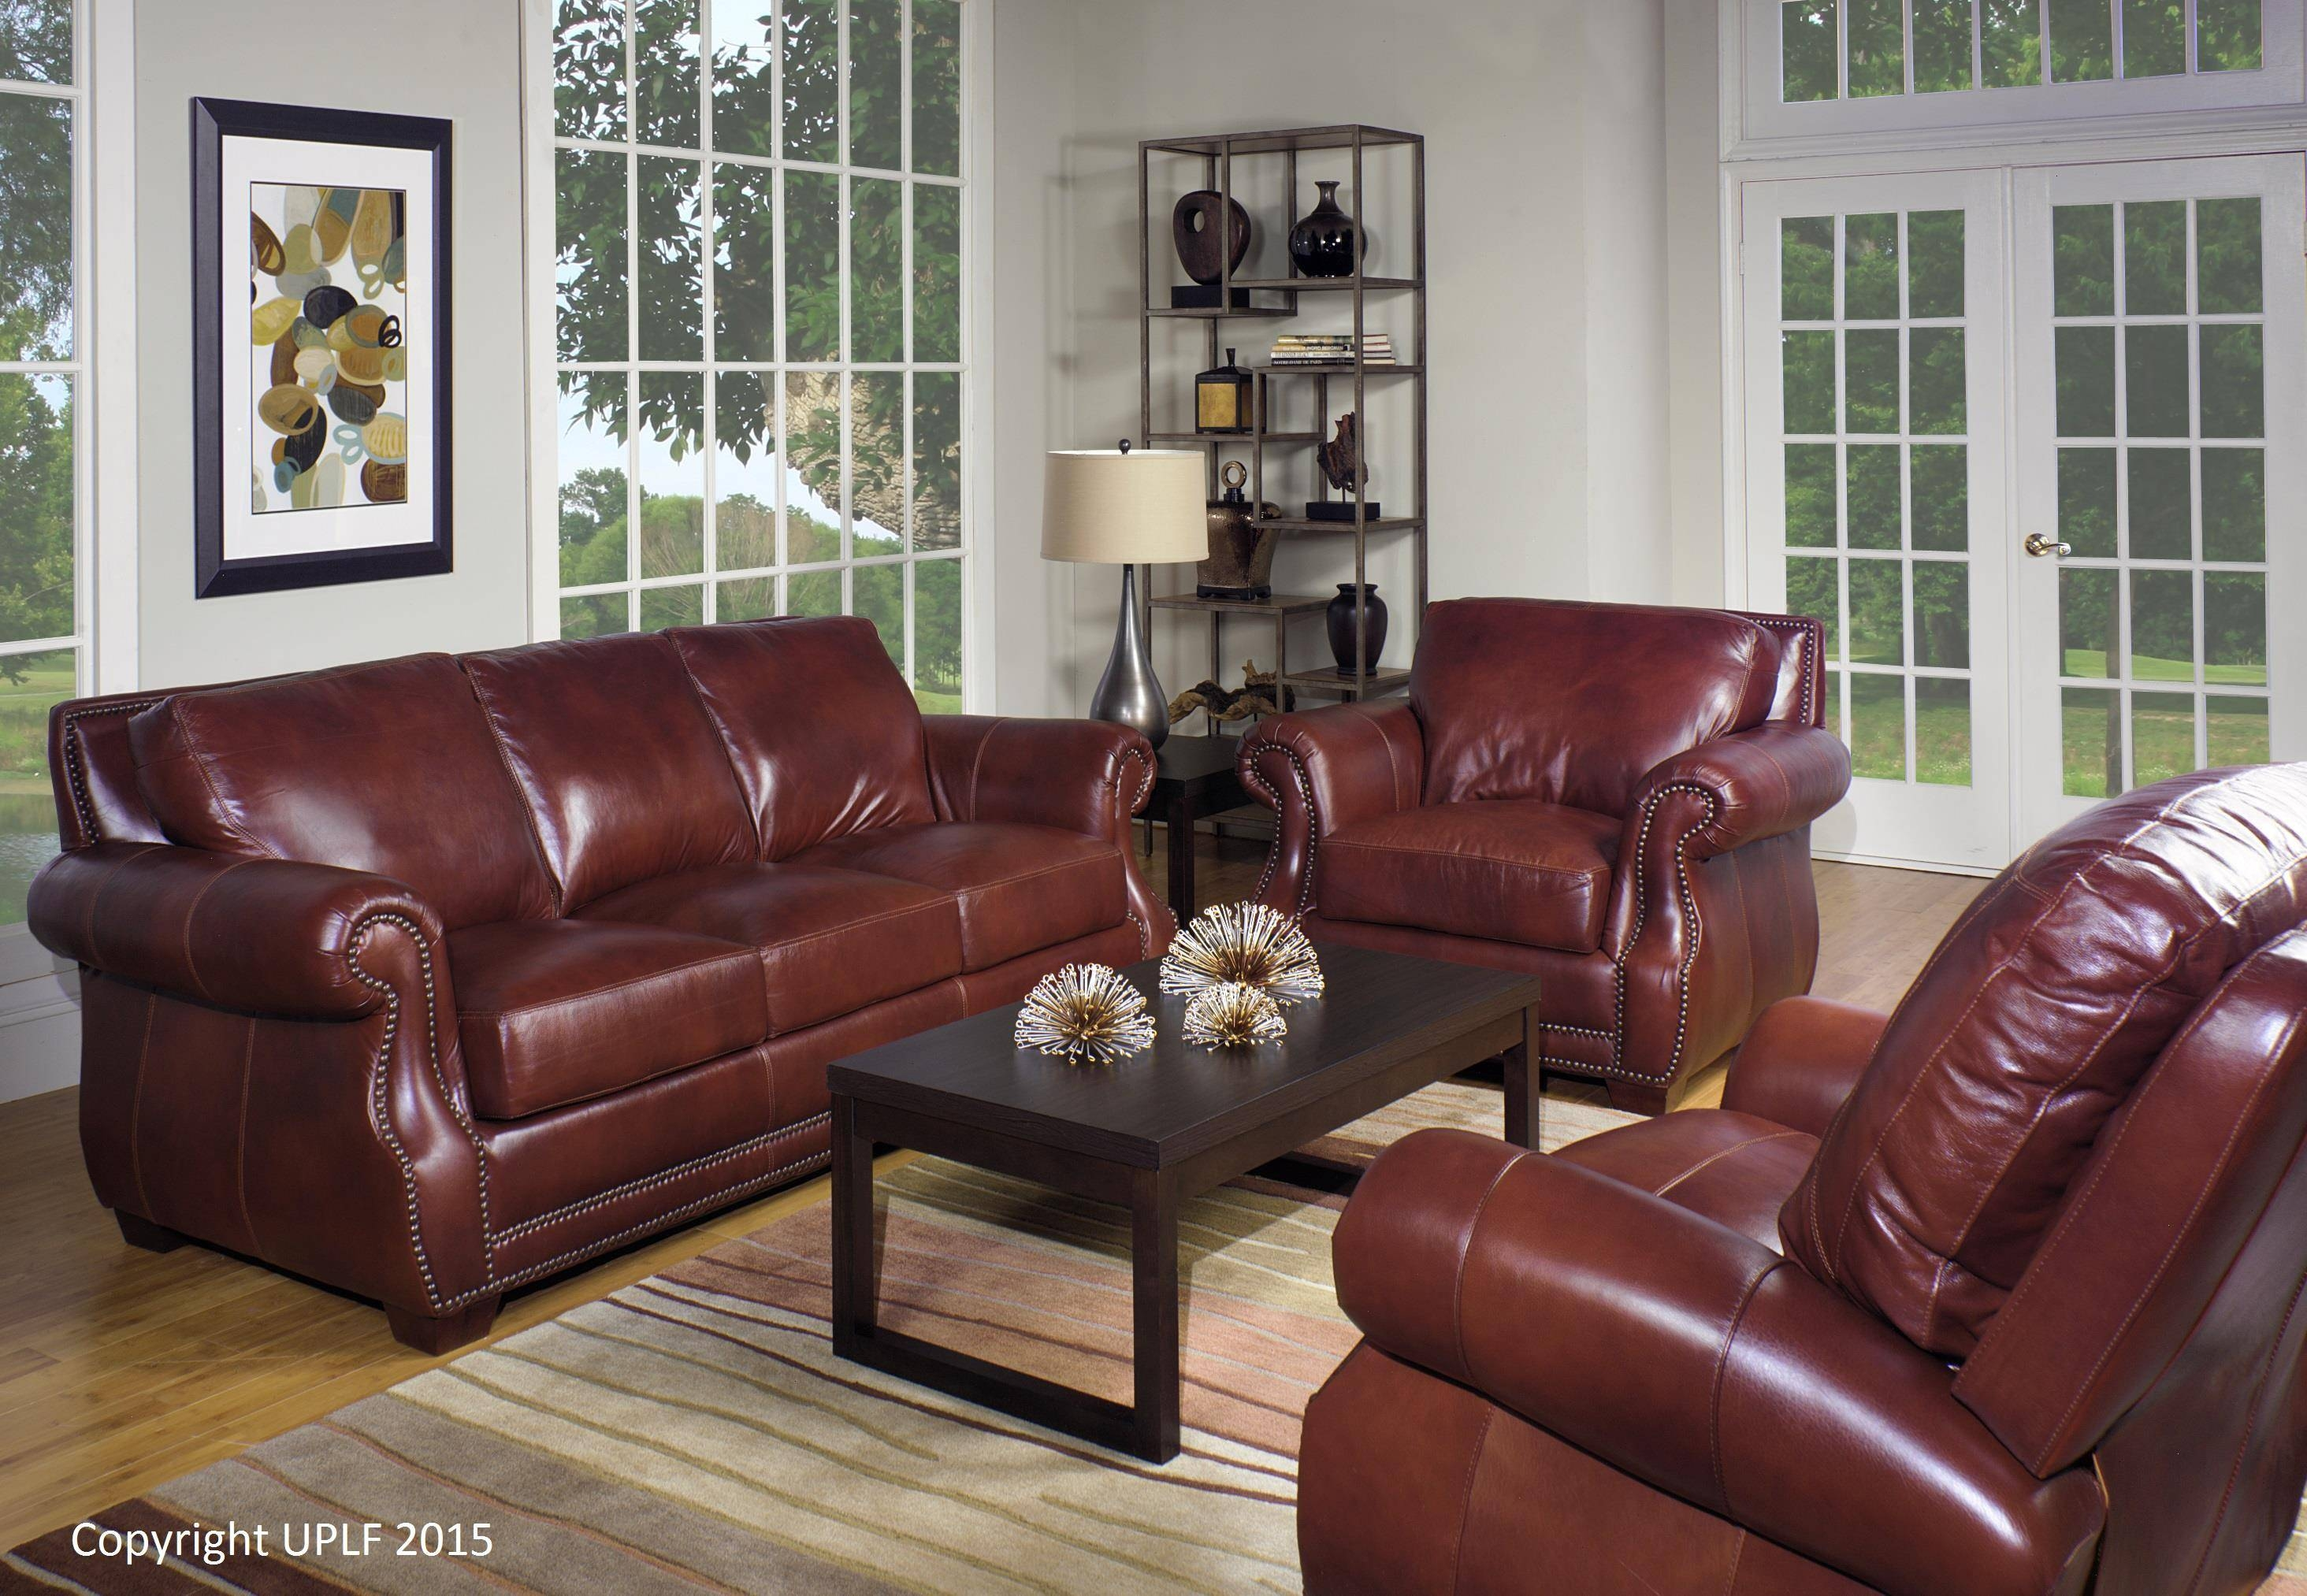 Traditional Top Grain Leather Sofa With Nailhead Trimusa with regard to Traditional Leather Couch (Image 27 of 30)